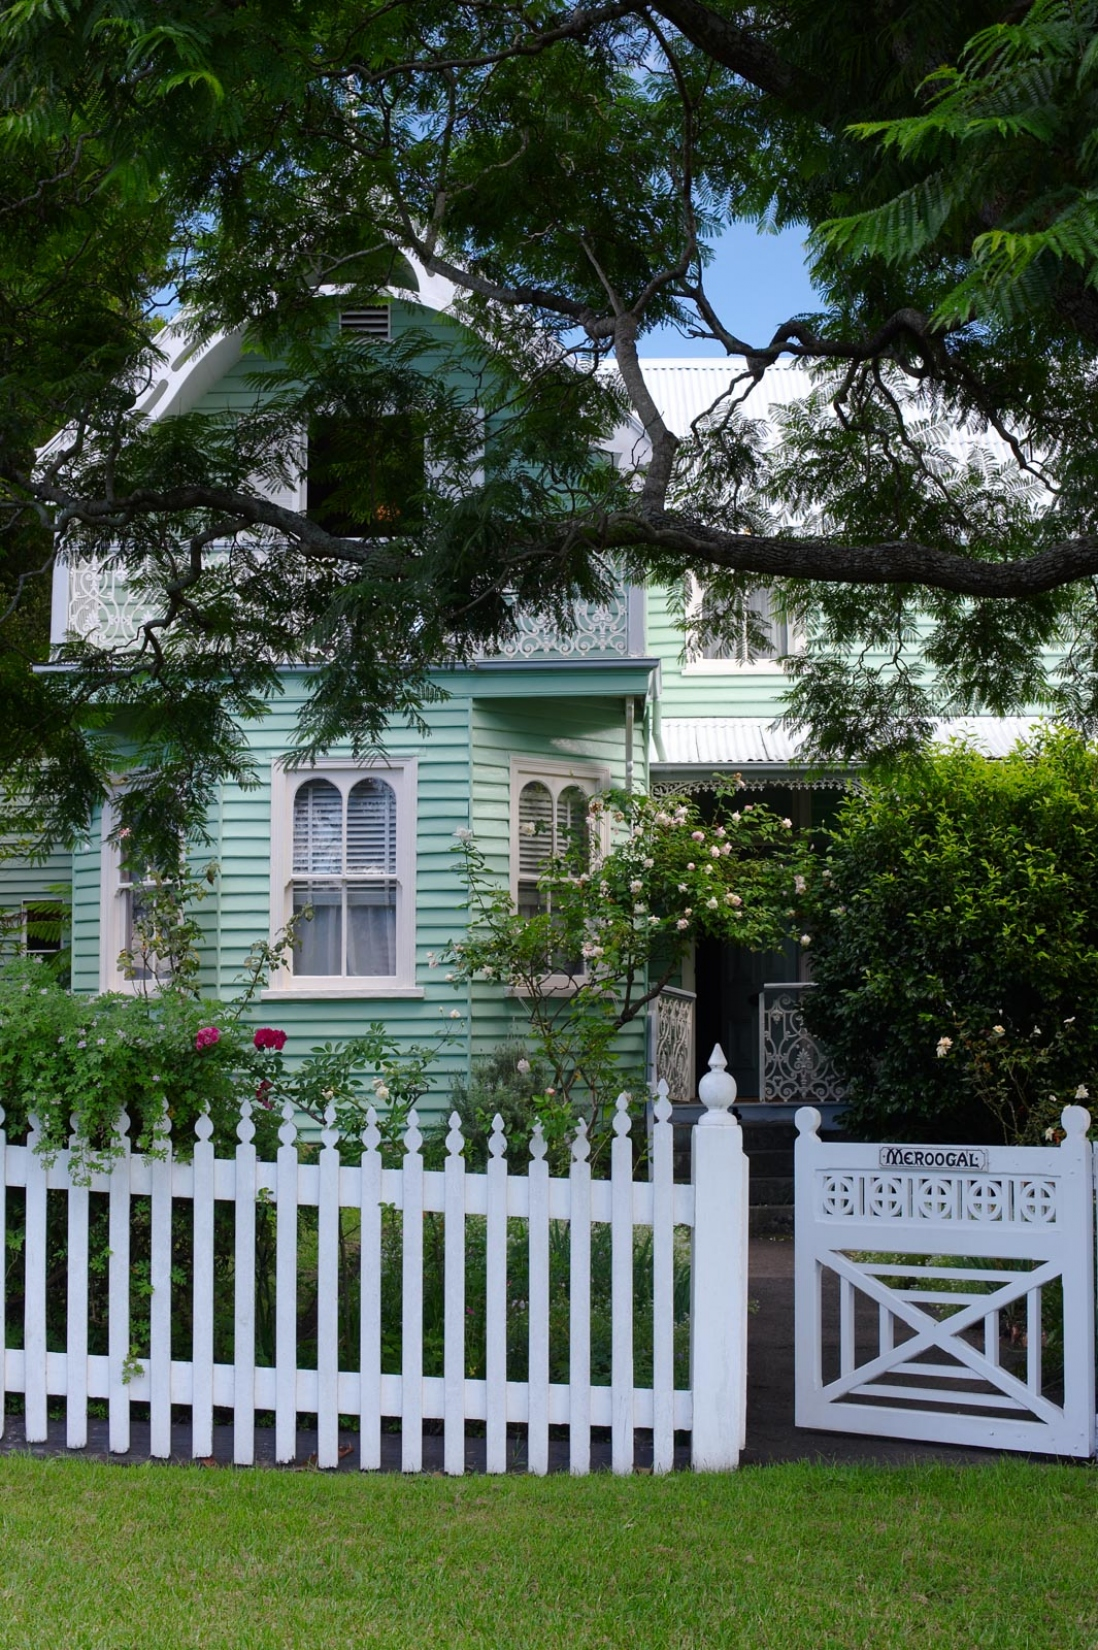 Exterior of wooden house with white picket fence and gate in foreground.